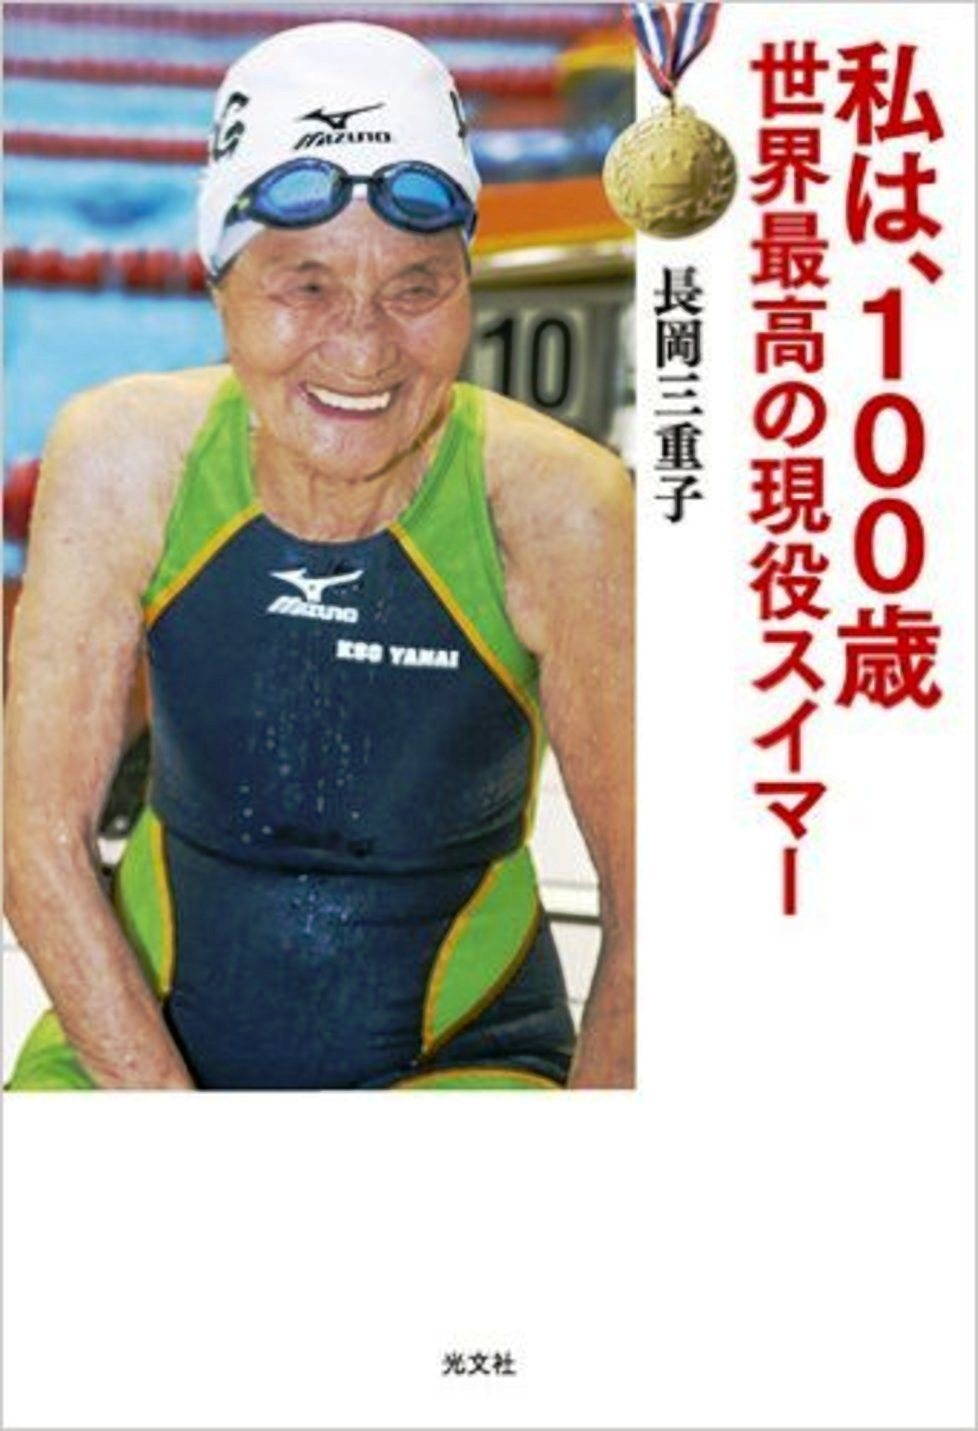 Japanese centenarian Mieko Nagaoka has published a book: I'm 100 years old and the world's best active swimmer. Source: Amazon